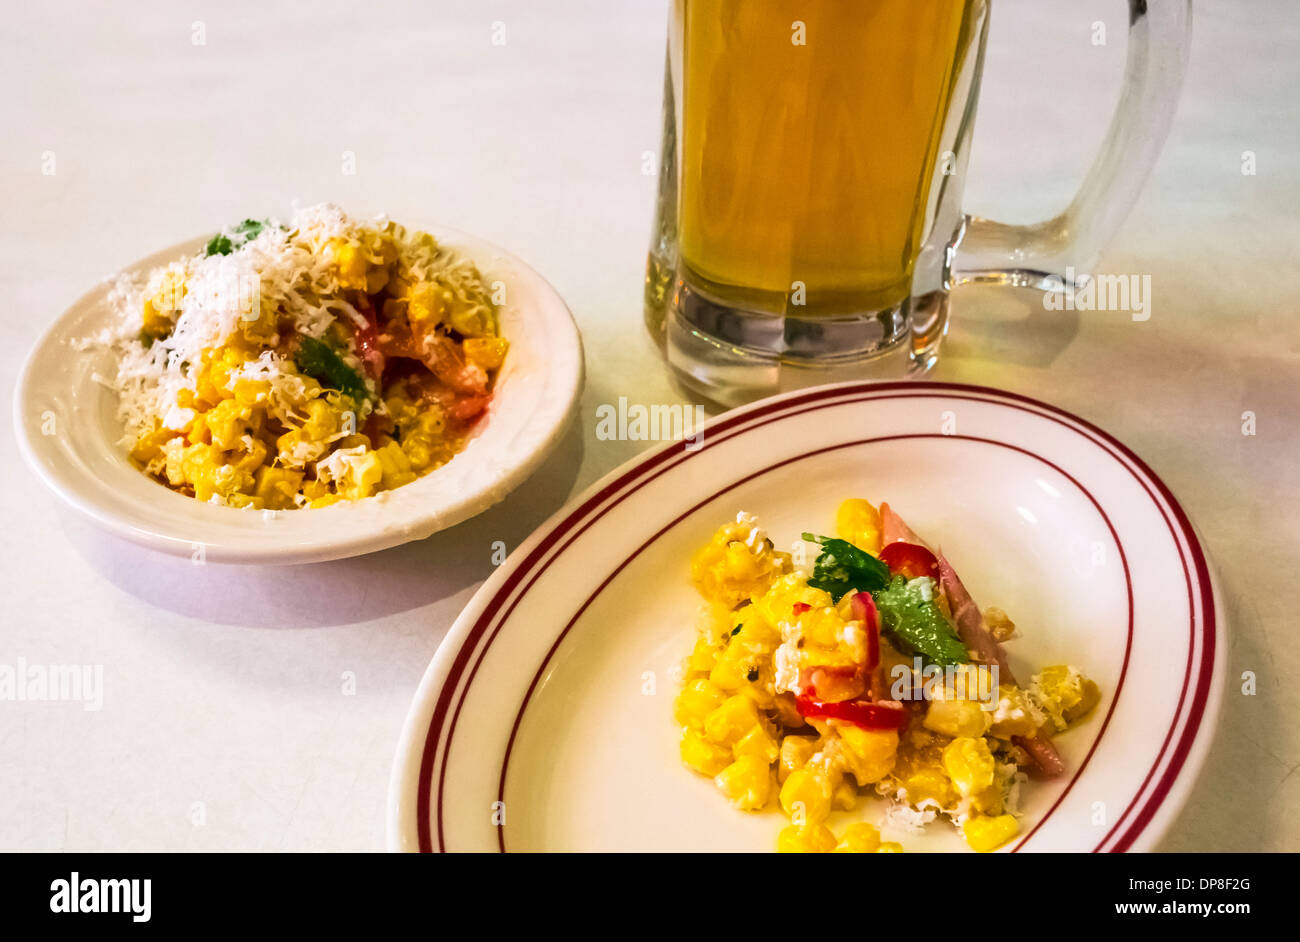 BHZ Spicy corn and peppers with cheese and a draft beer - Stock Image